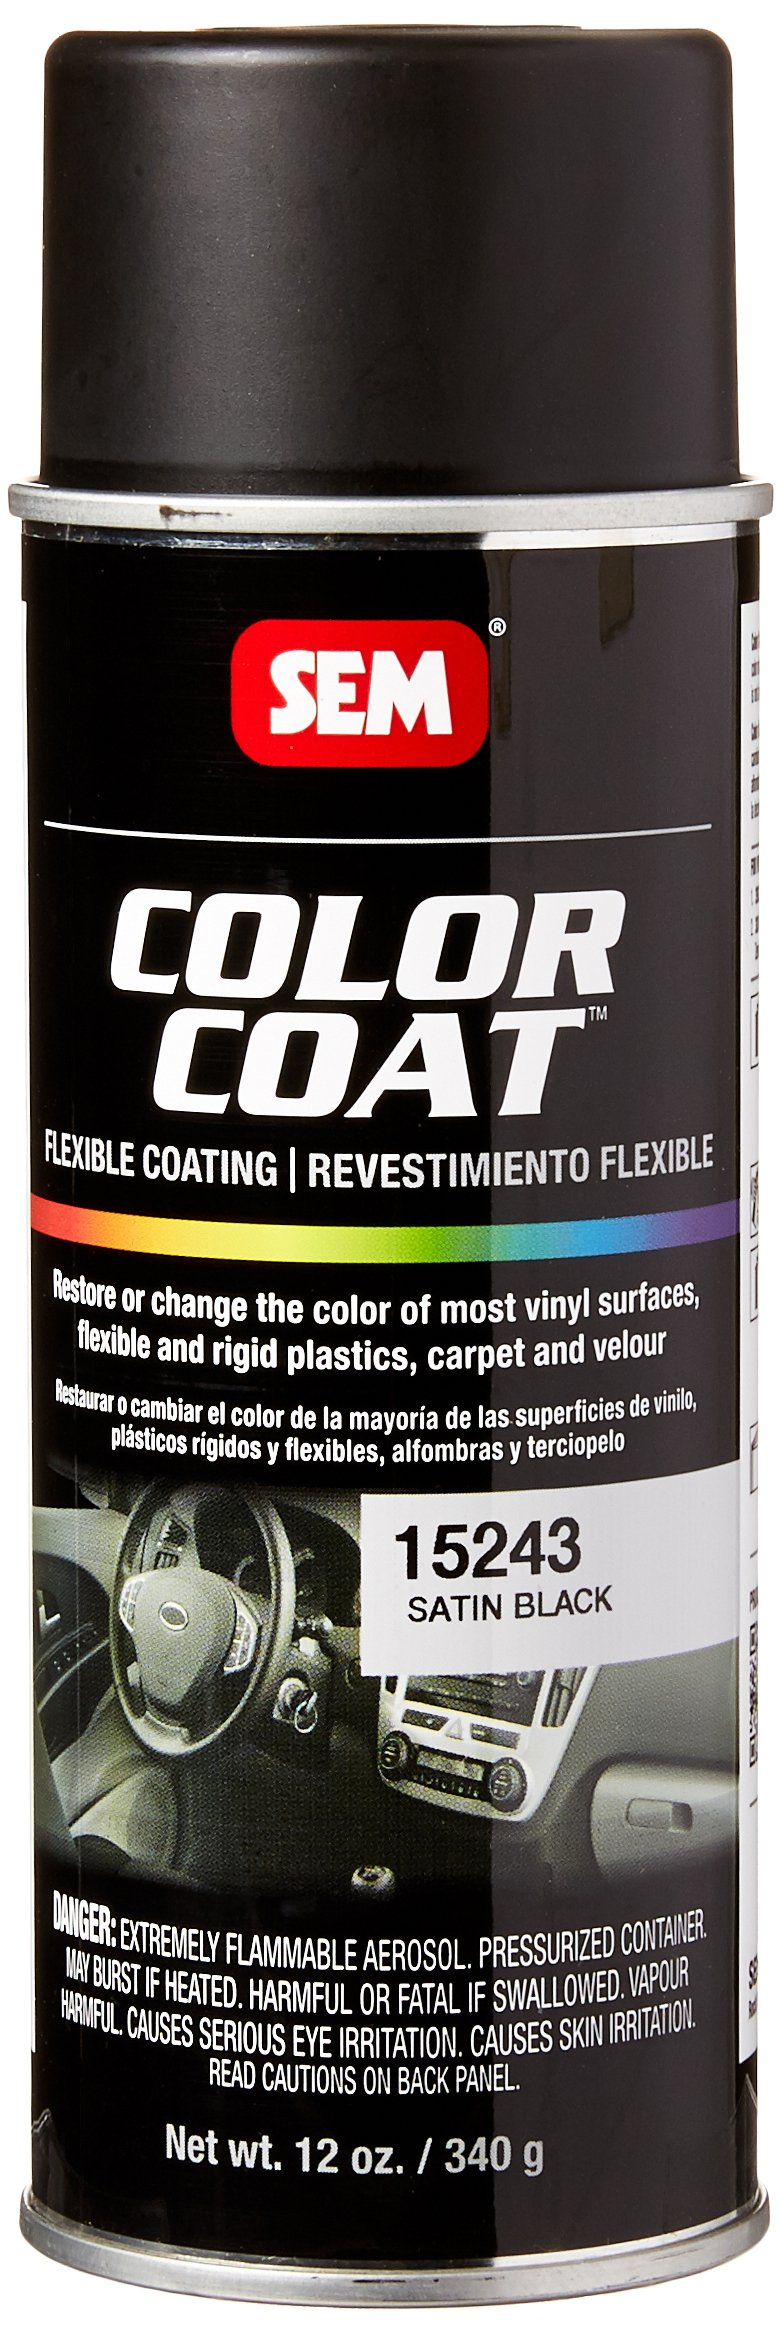 SEM Products 15243 Satin Black Color Coat - 12 oz. by Sem Products